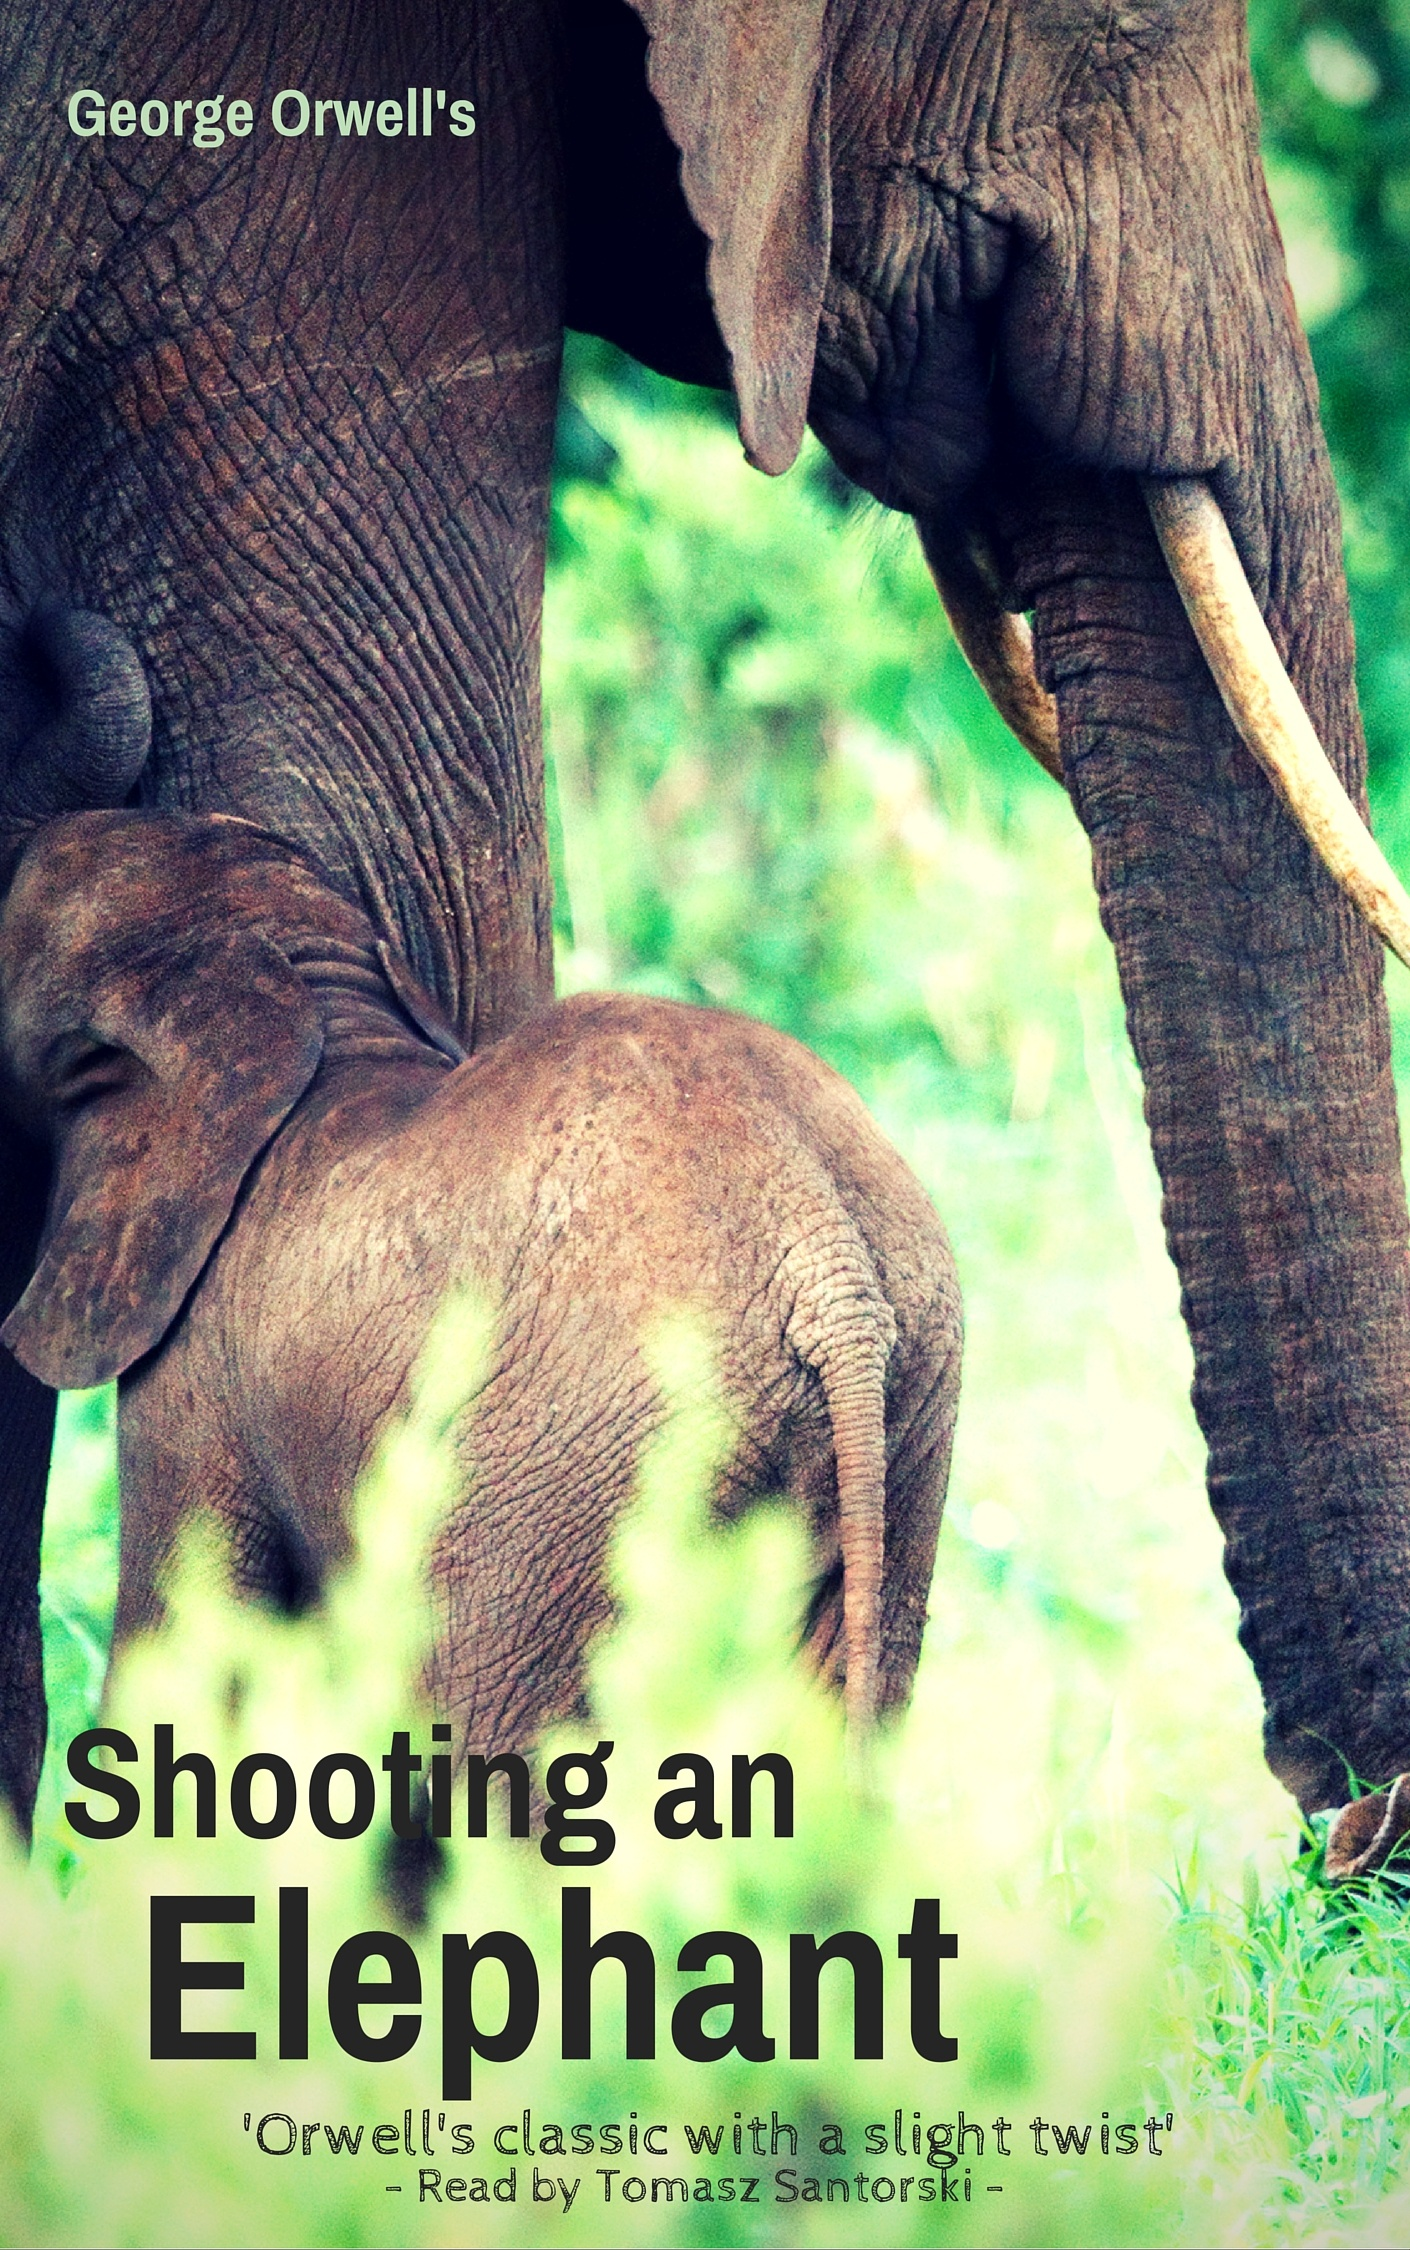 shooting an elephant peer pressure I believe the essay shooting an elephant by george orwell was intended to point out how peer pressure can impact a person's decision and to make the audience question how they would react had they been in that situation.